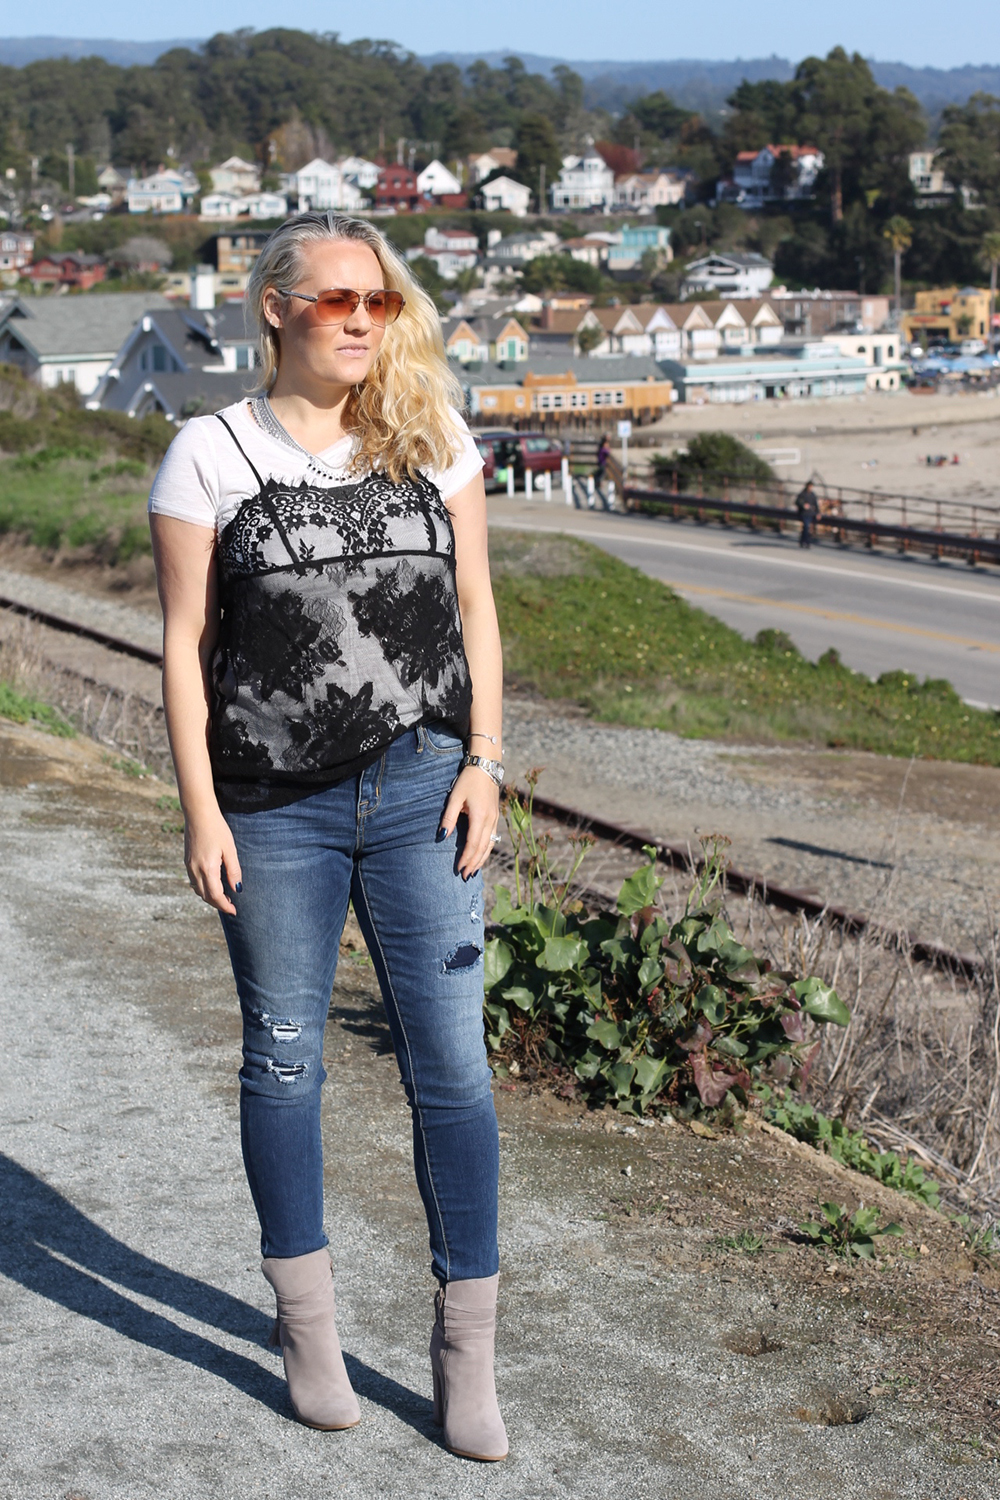 Black t shirt target - Black T Shirt Target Lace Cami Tshirt Target Style Outfit Inspiration Fashion